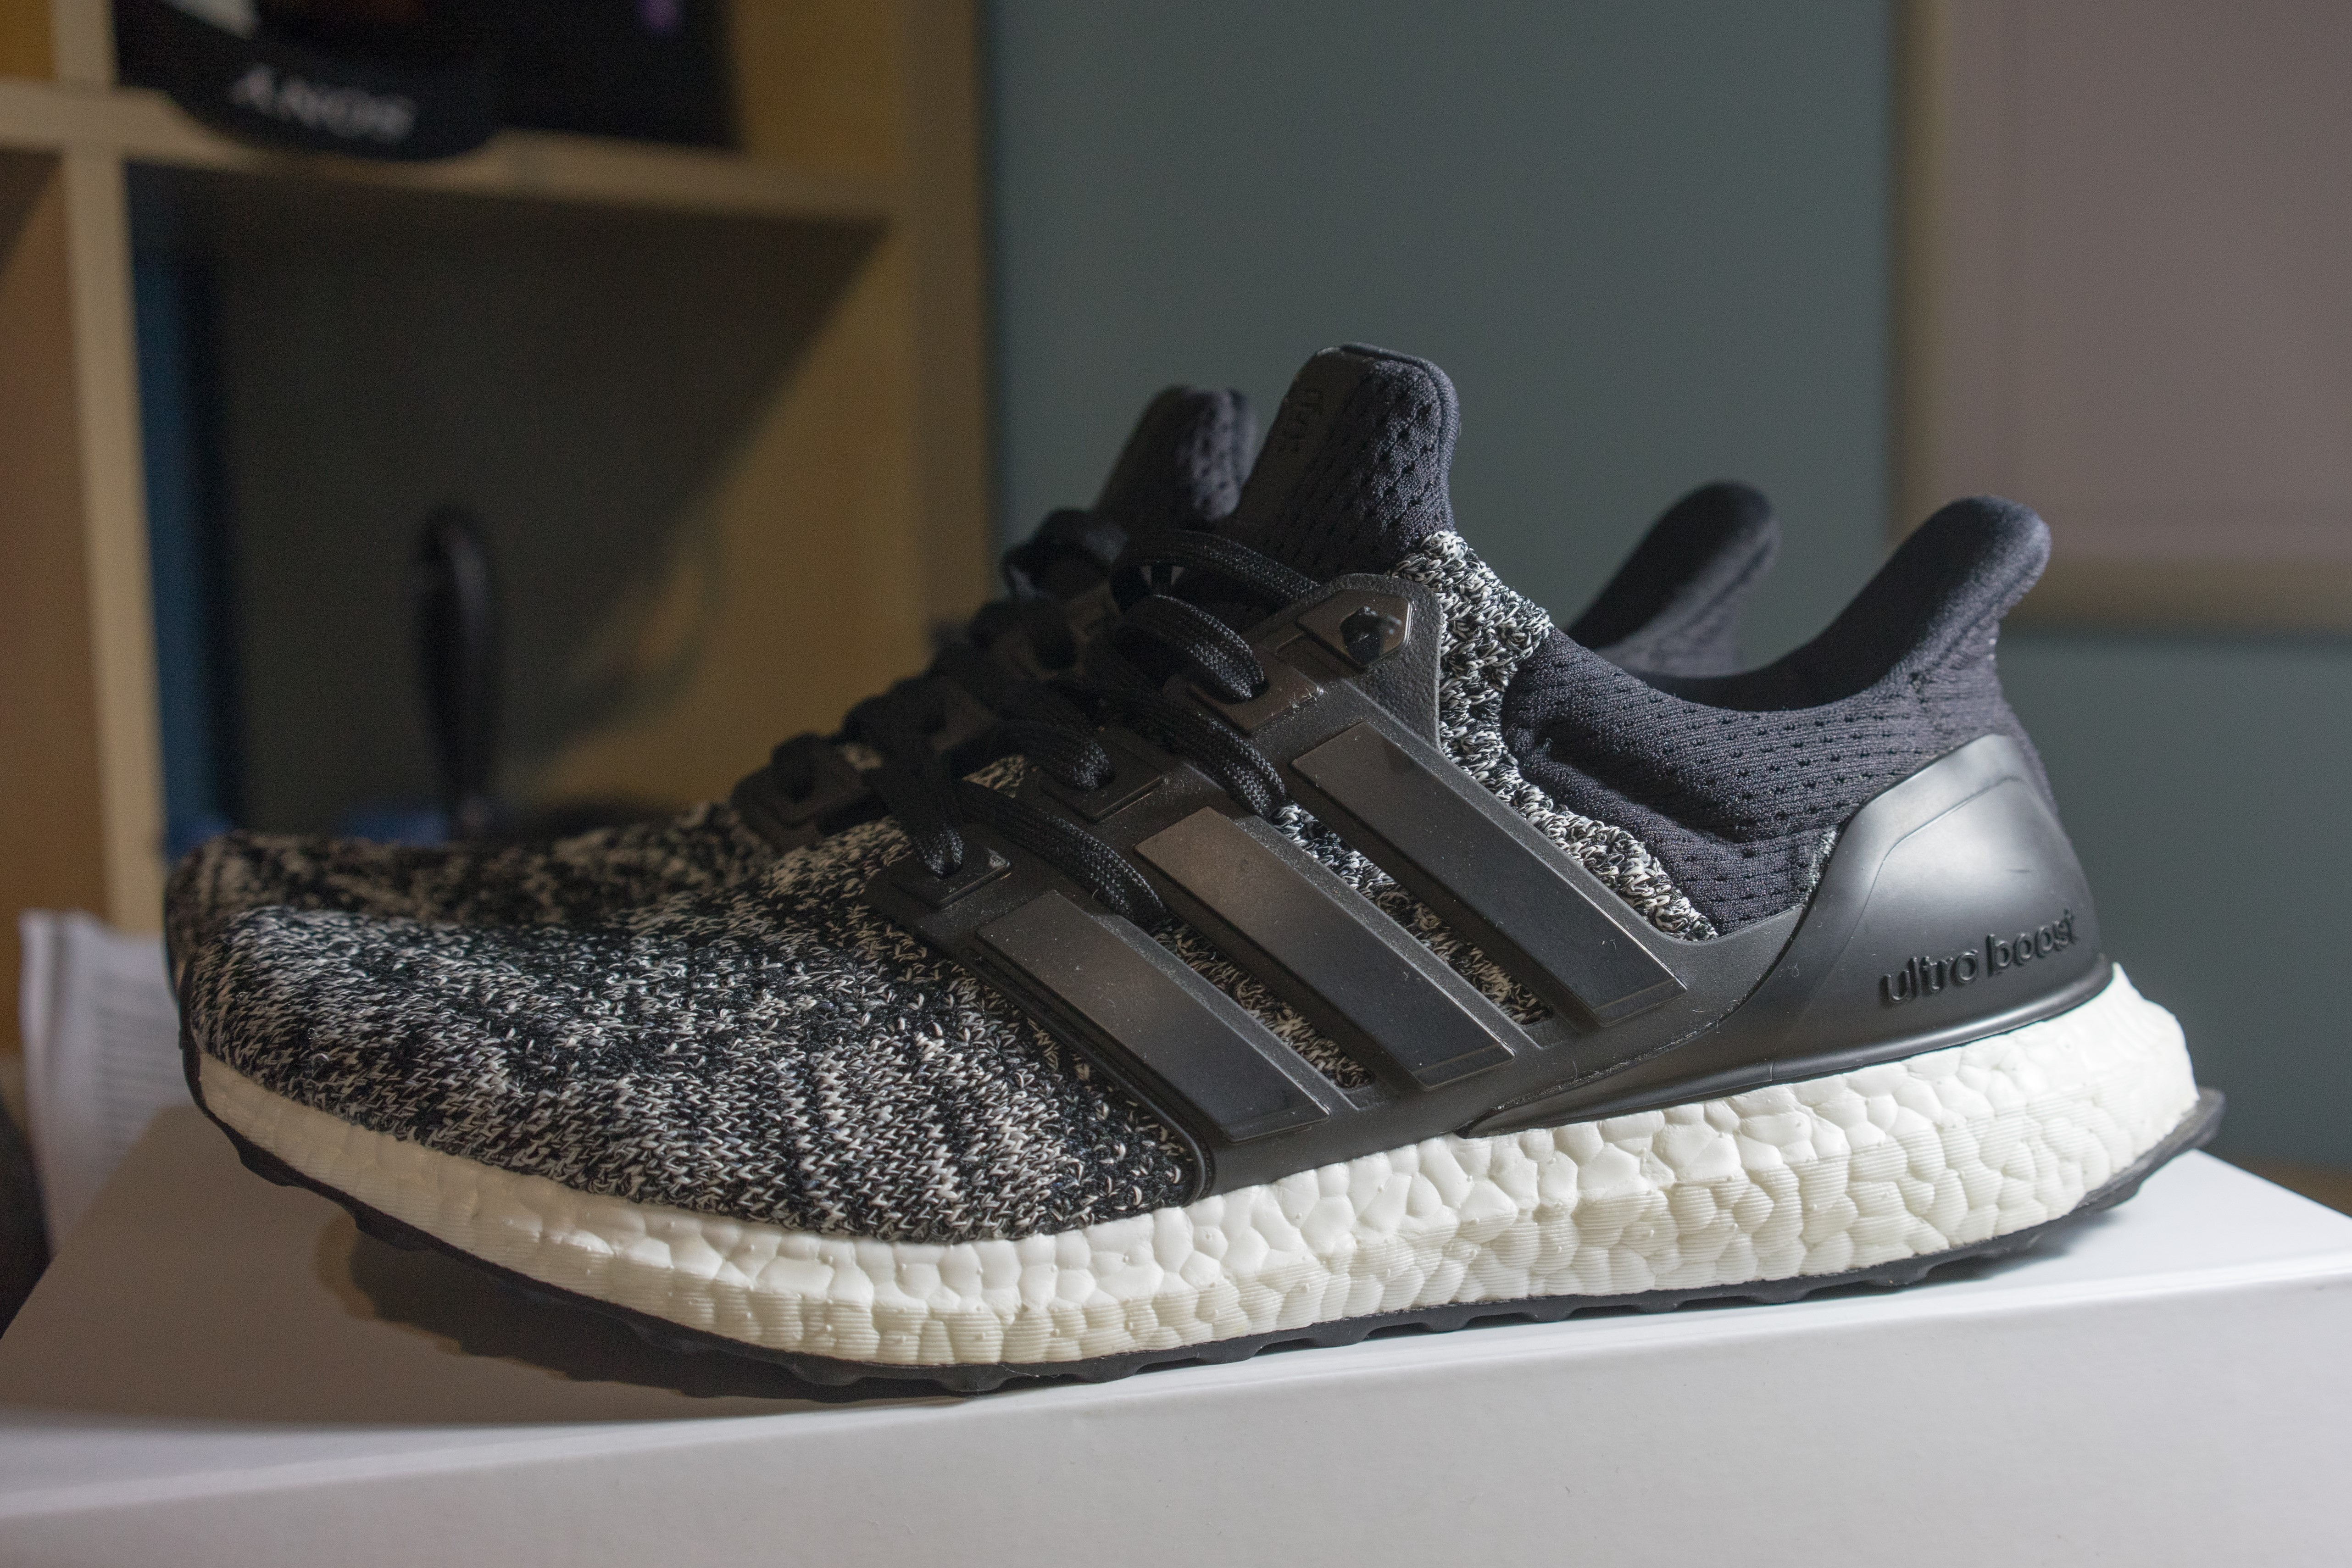 dd70e2617e125 Adidas × Reigning Champ ×. Reigning Champ Ultraboost 1.0